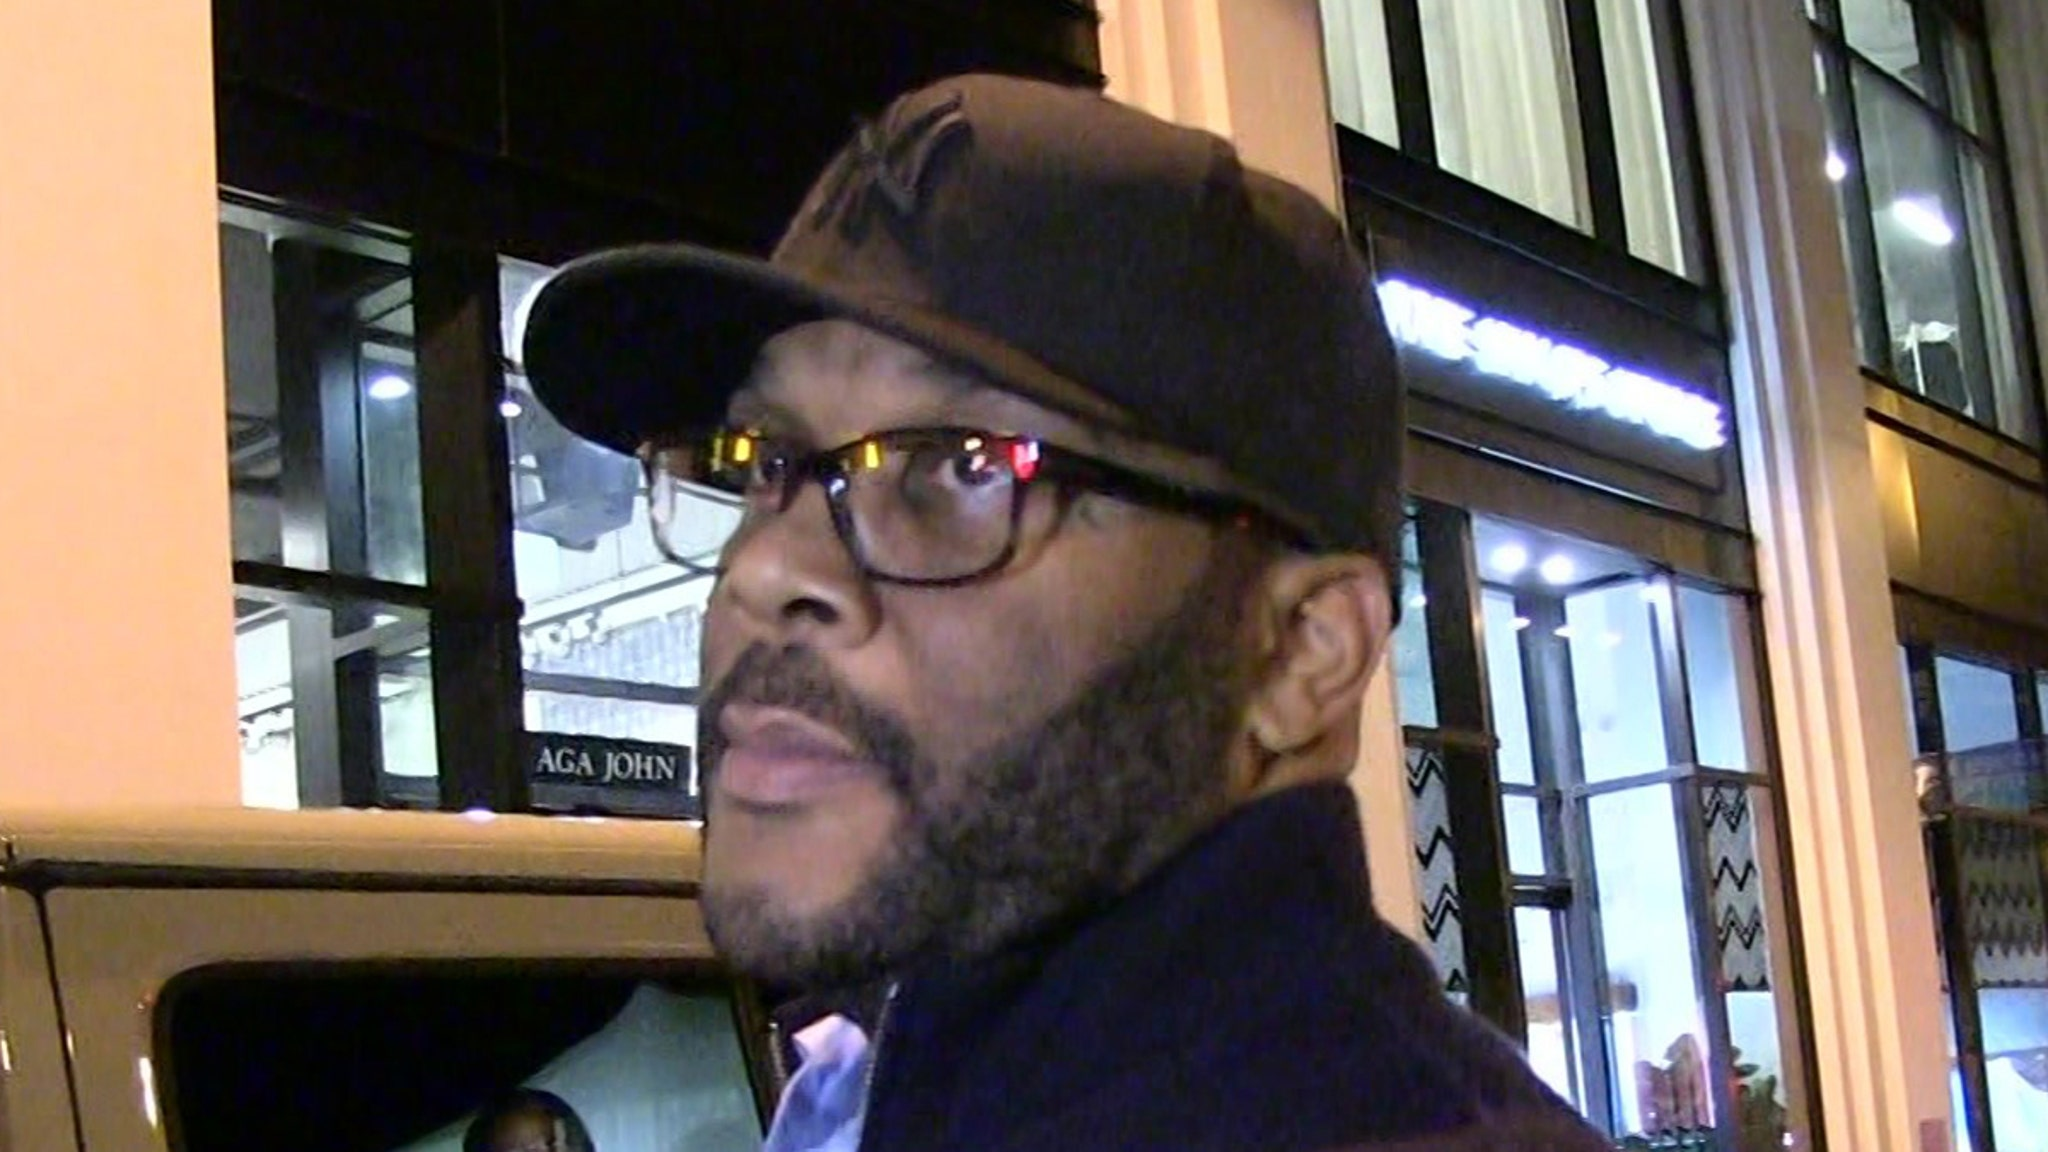 Tyler Perry's Nephew Dead from Suicide By Hanging in Prison, Family Suspicious